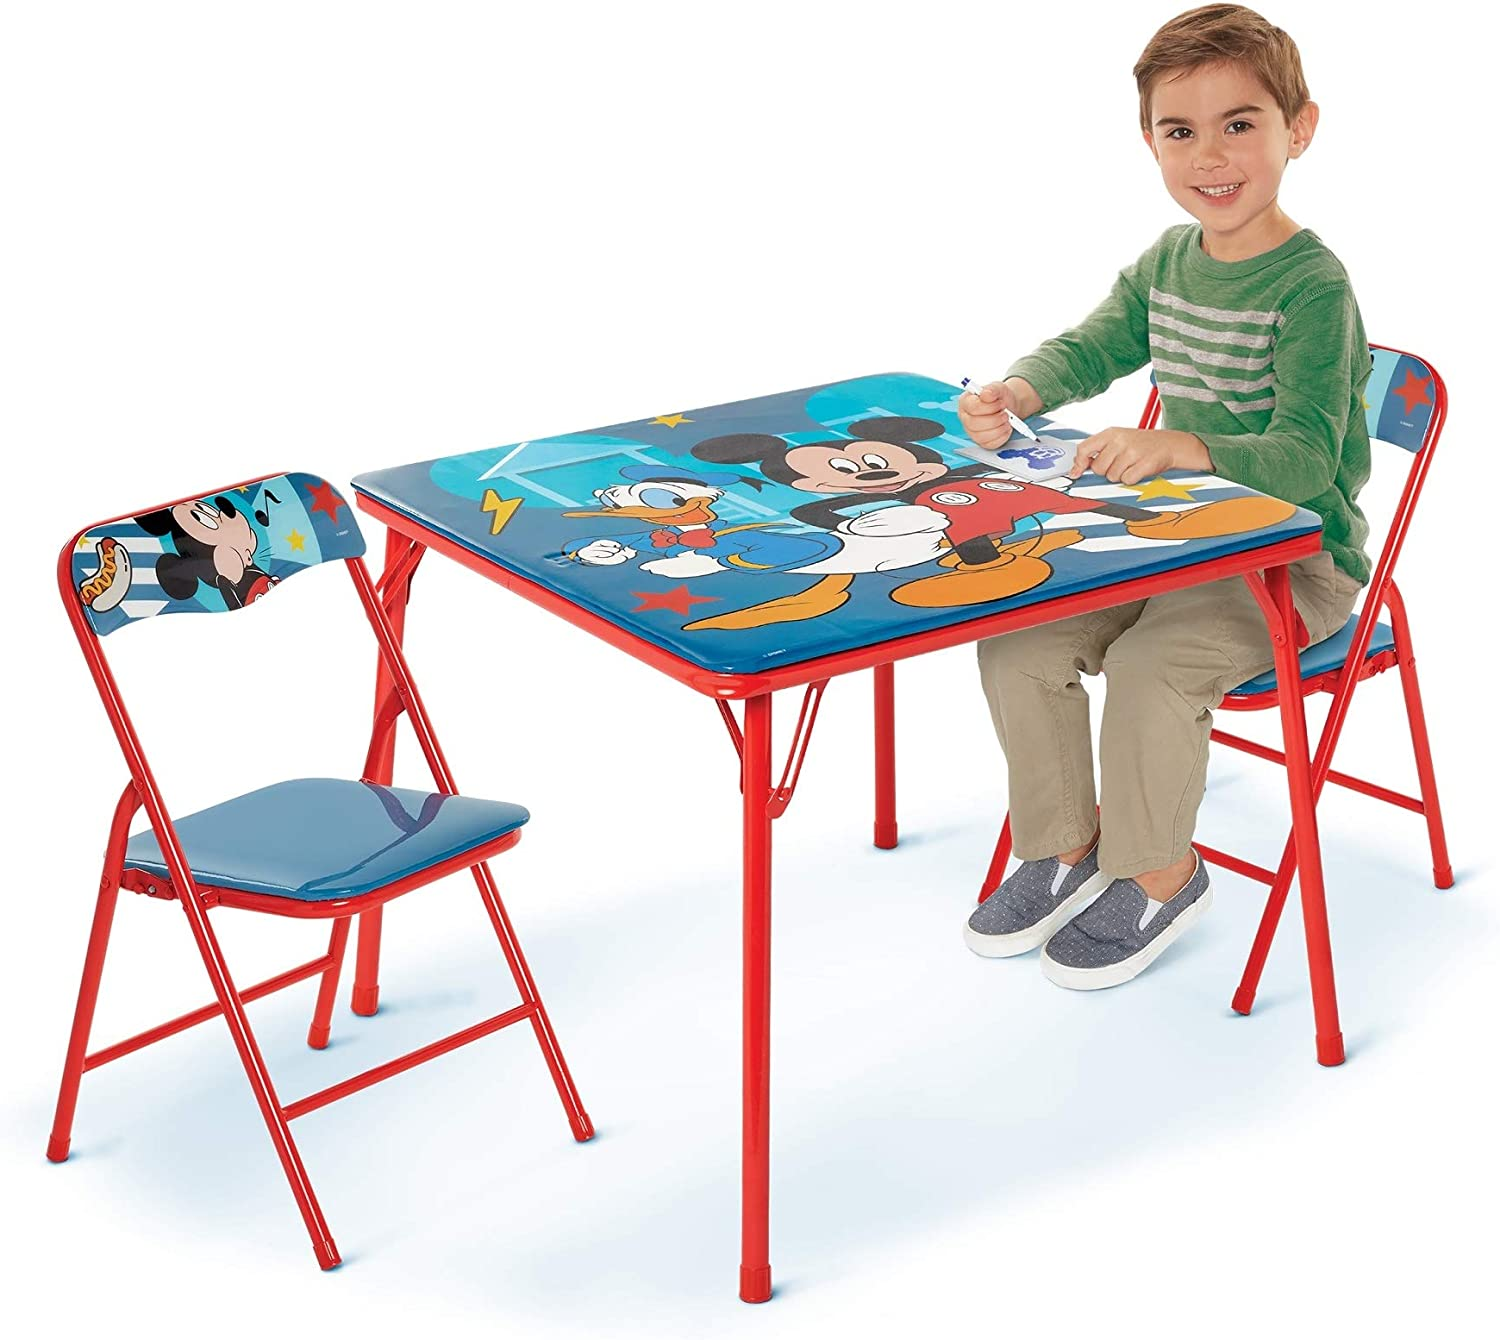 Mickey Mouse Activity Table Sets – Folding Childrens Table & Chair Set – Includes 2 Kid Chairs with Non Skid Rubber Feet & Padded Seats – Sturdy Metal Construction